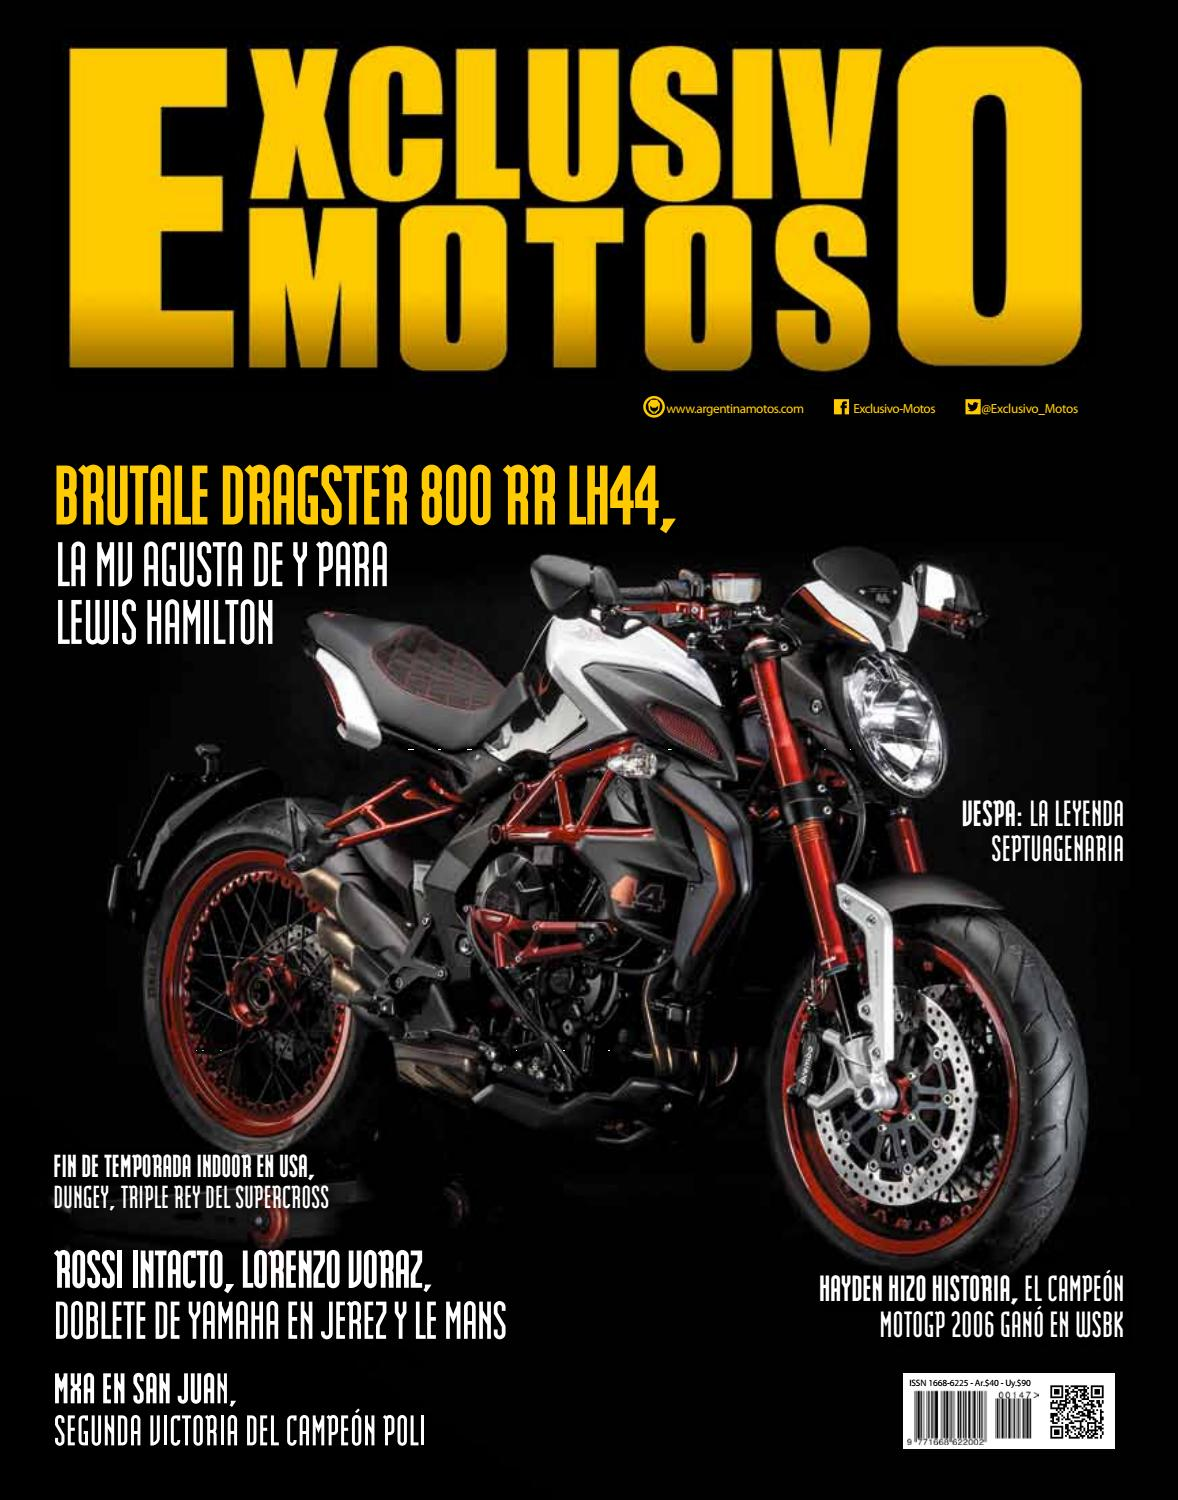 EXM 147 - Junio 2016 by Exclusivo Motos - issuu